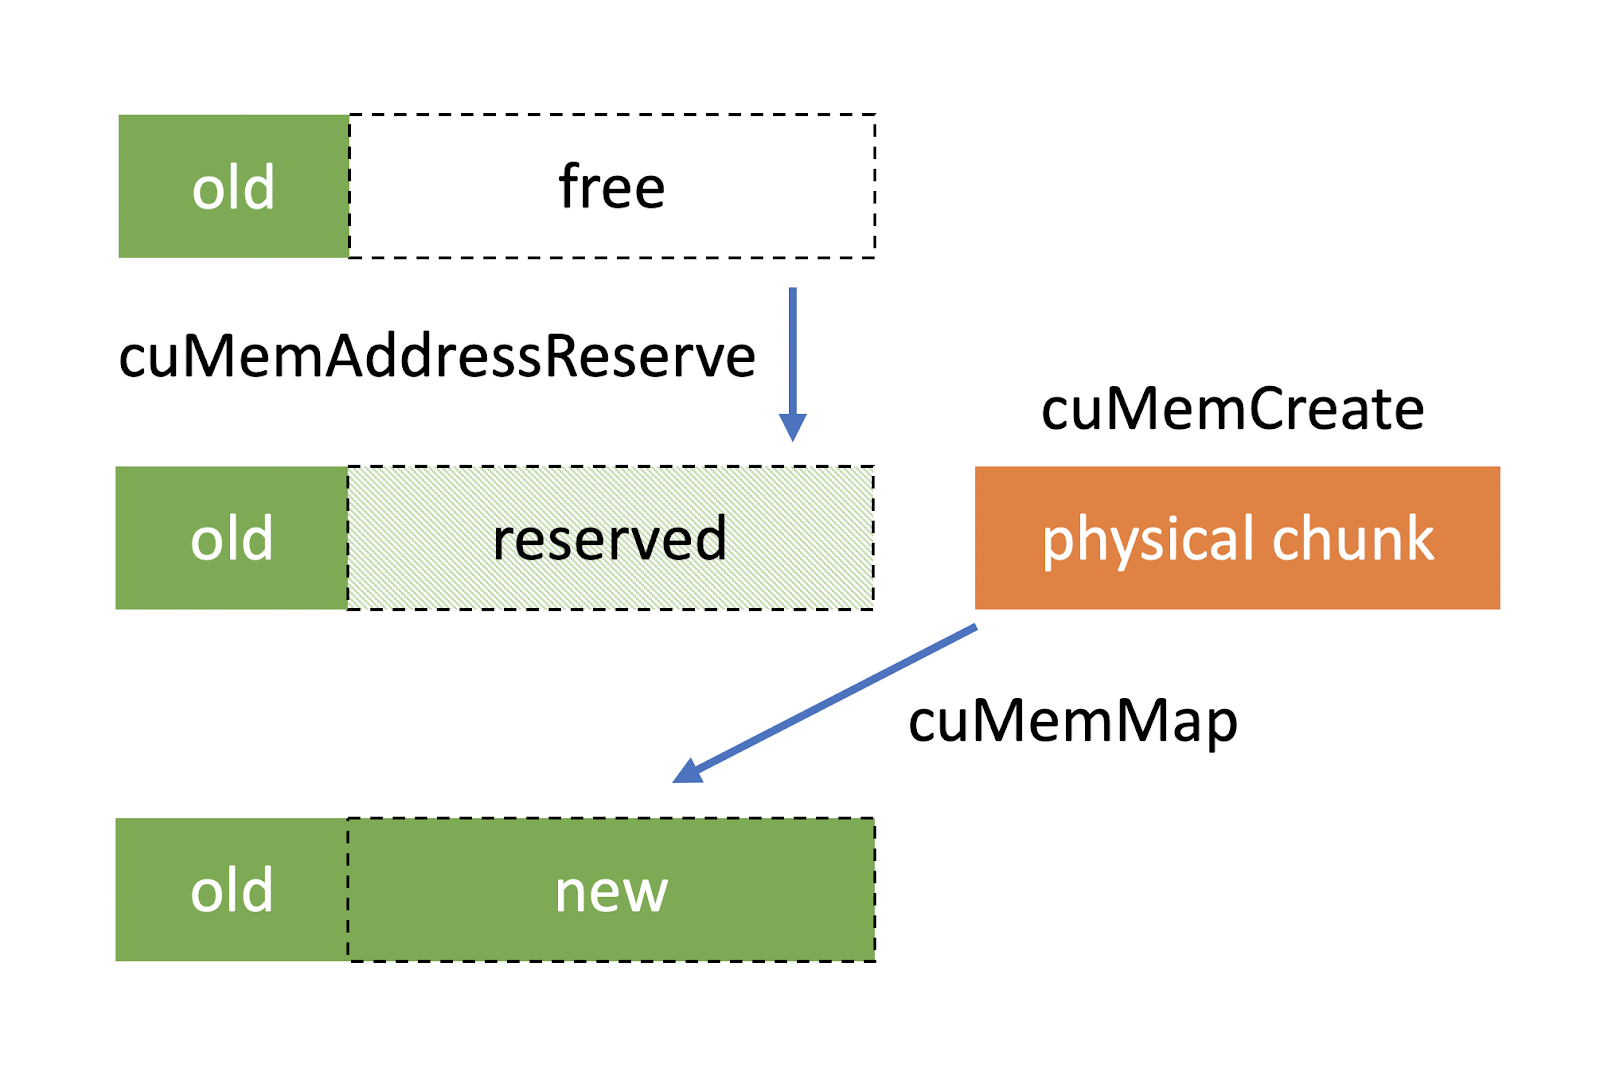 This diagram shows that 1) cuMemAddressReserve reserves the virtual address range for the new buffer, 2) cuMemCreate carves up a physical memory block, and 3) cuMemMap maps the virtual range to the physical block.